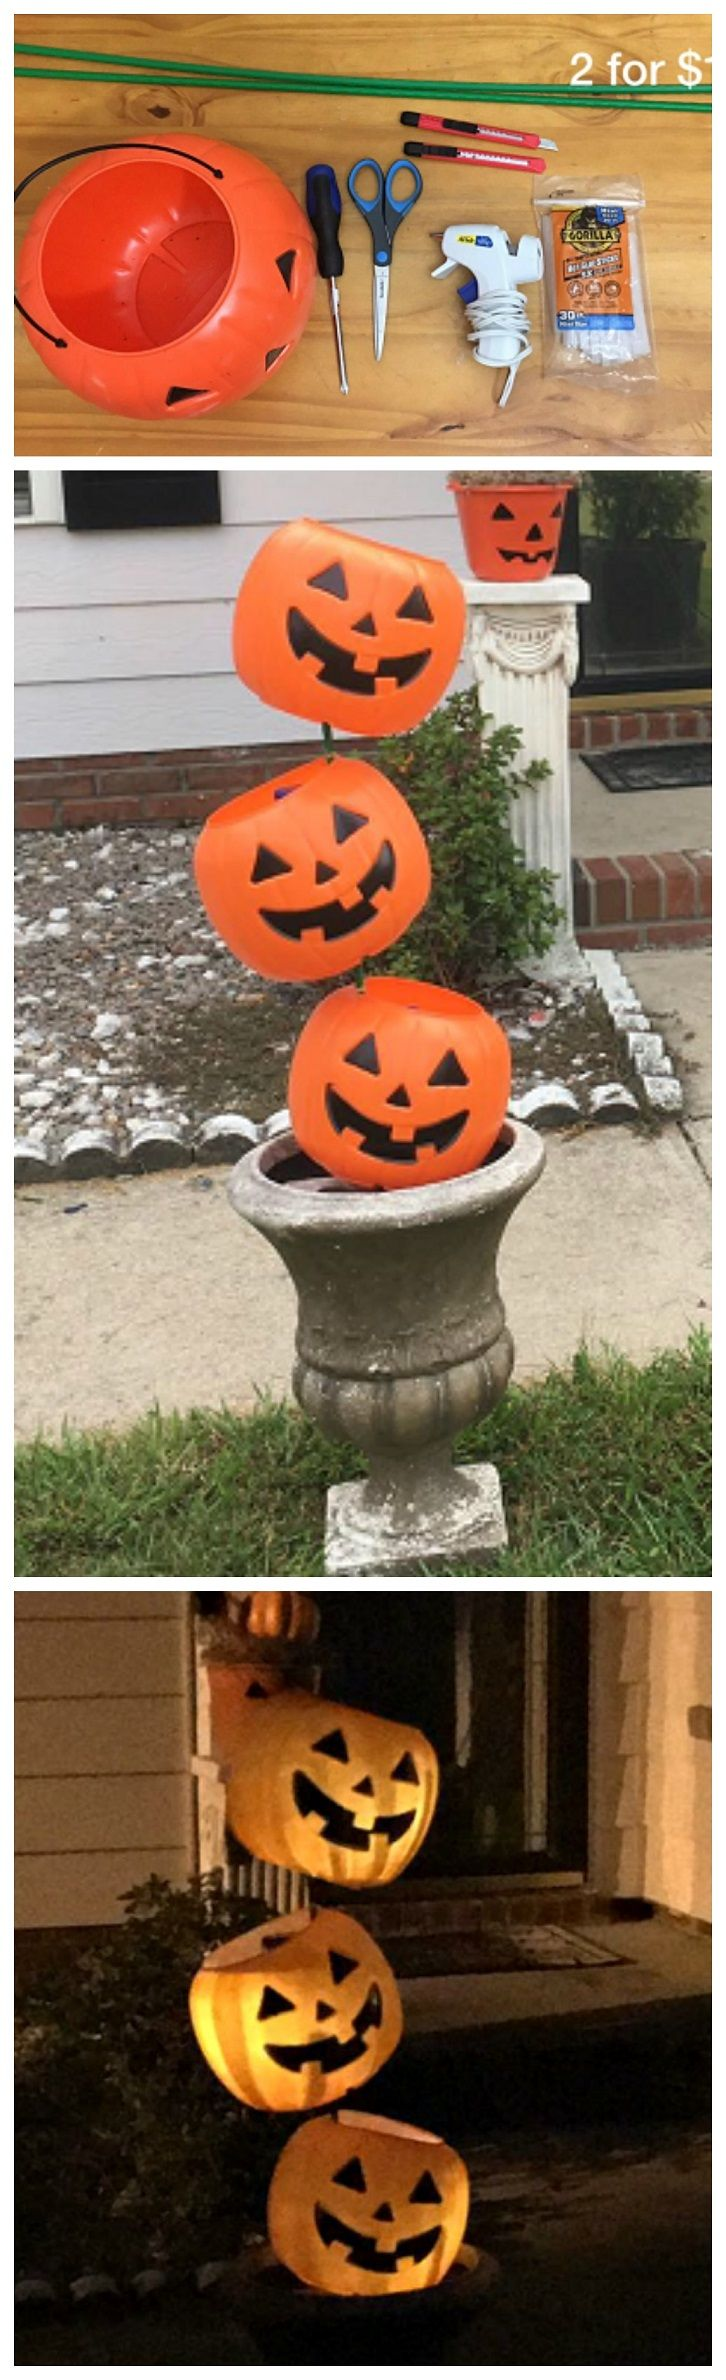 make a plastic pumpkin pail tipsy decoration for halloween such a cheap and easy craft - Decorate For Halloween Cheap